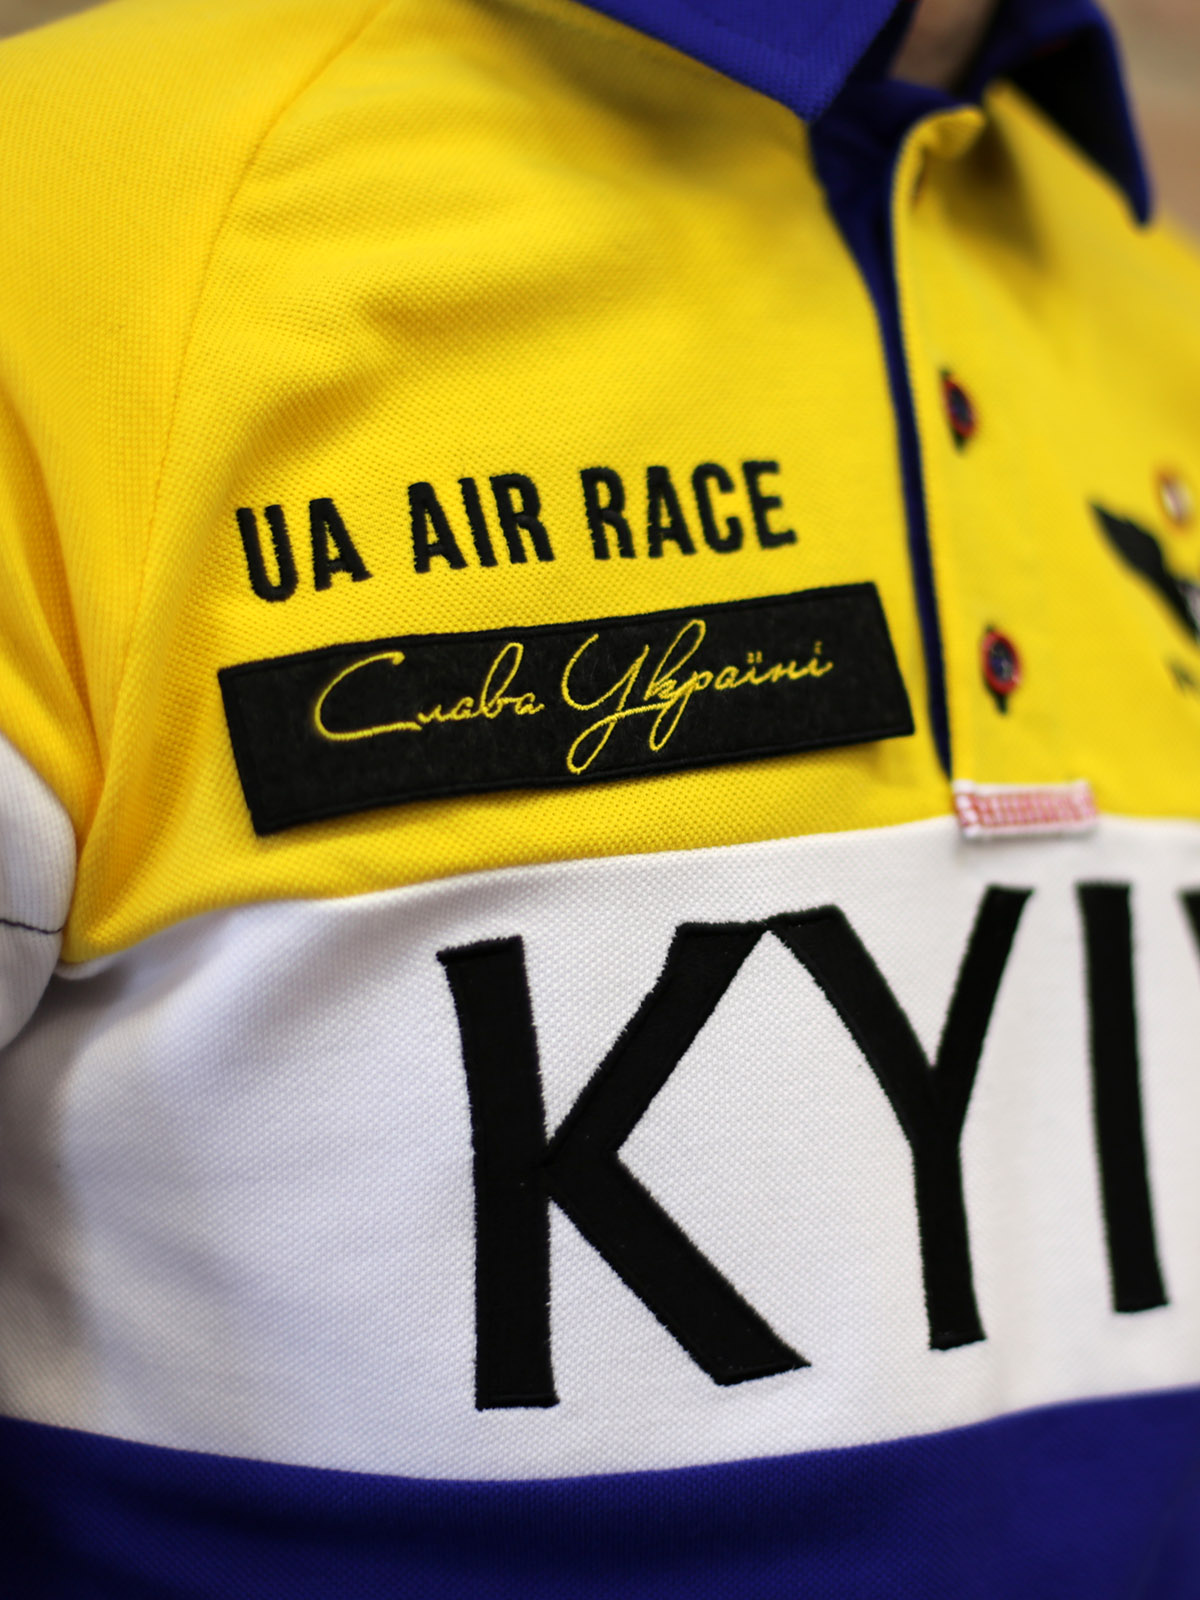 Men's Polo Long Air Race Kyiv. Color navy blue.  Size worn by the model: S.